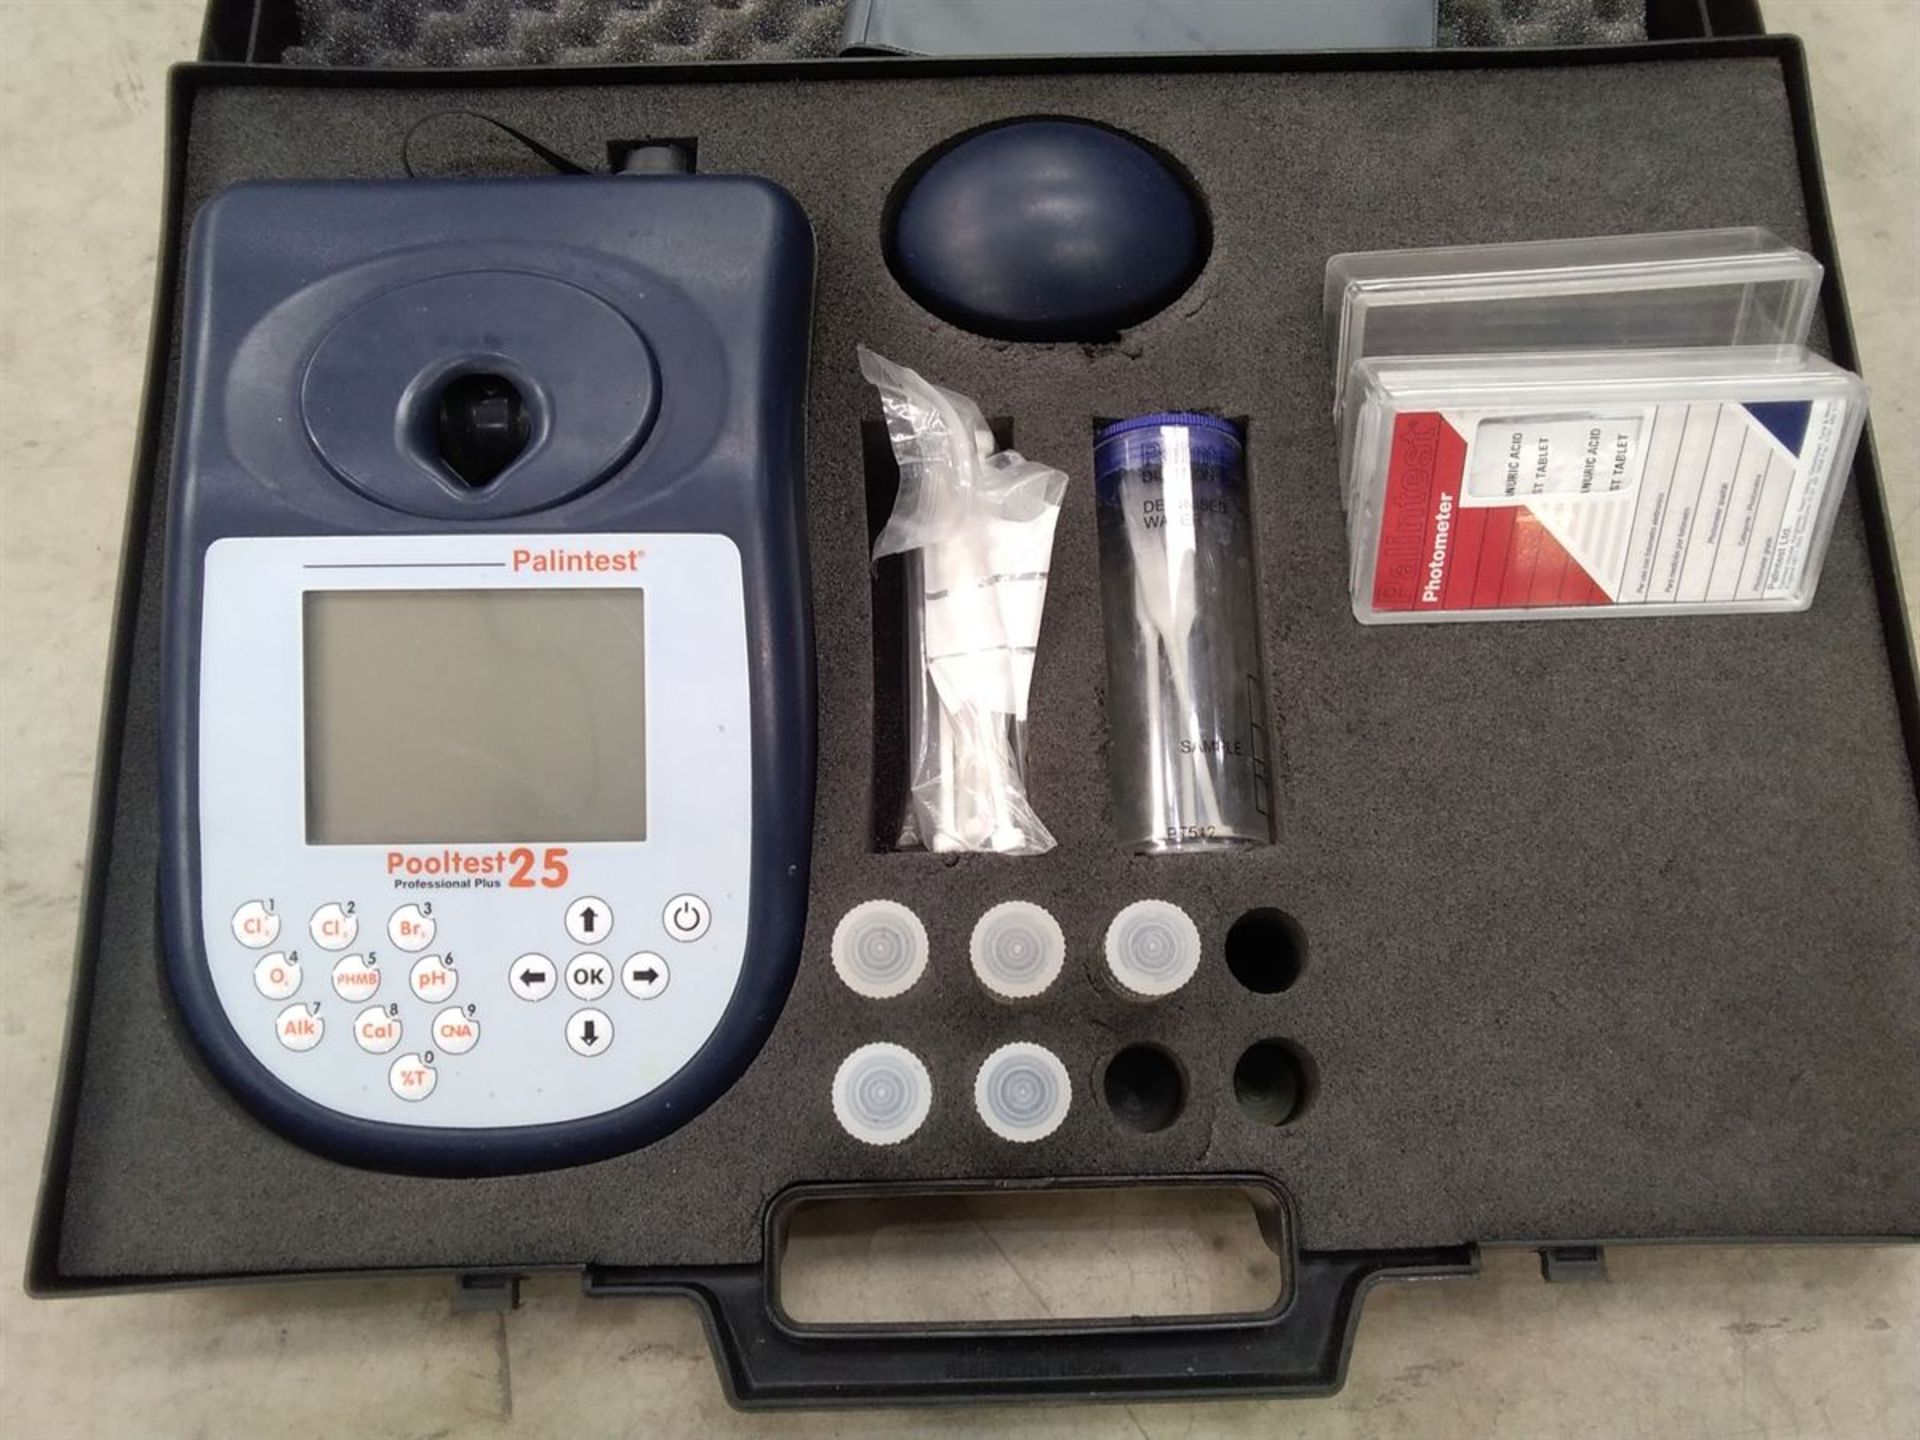 Lot 55 - Palintest Pooltest 25 Photometer Kit